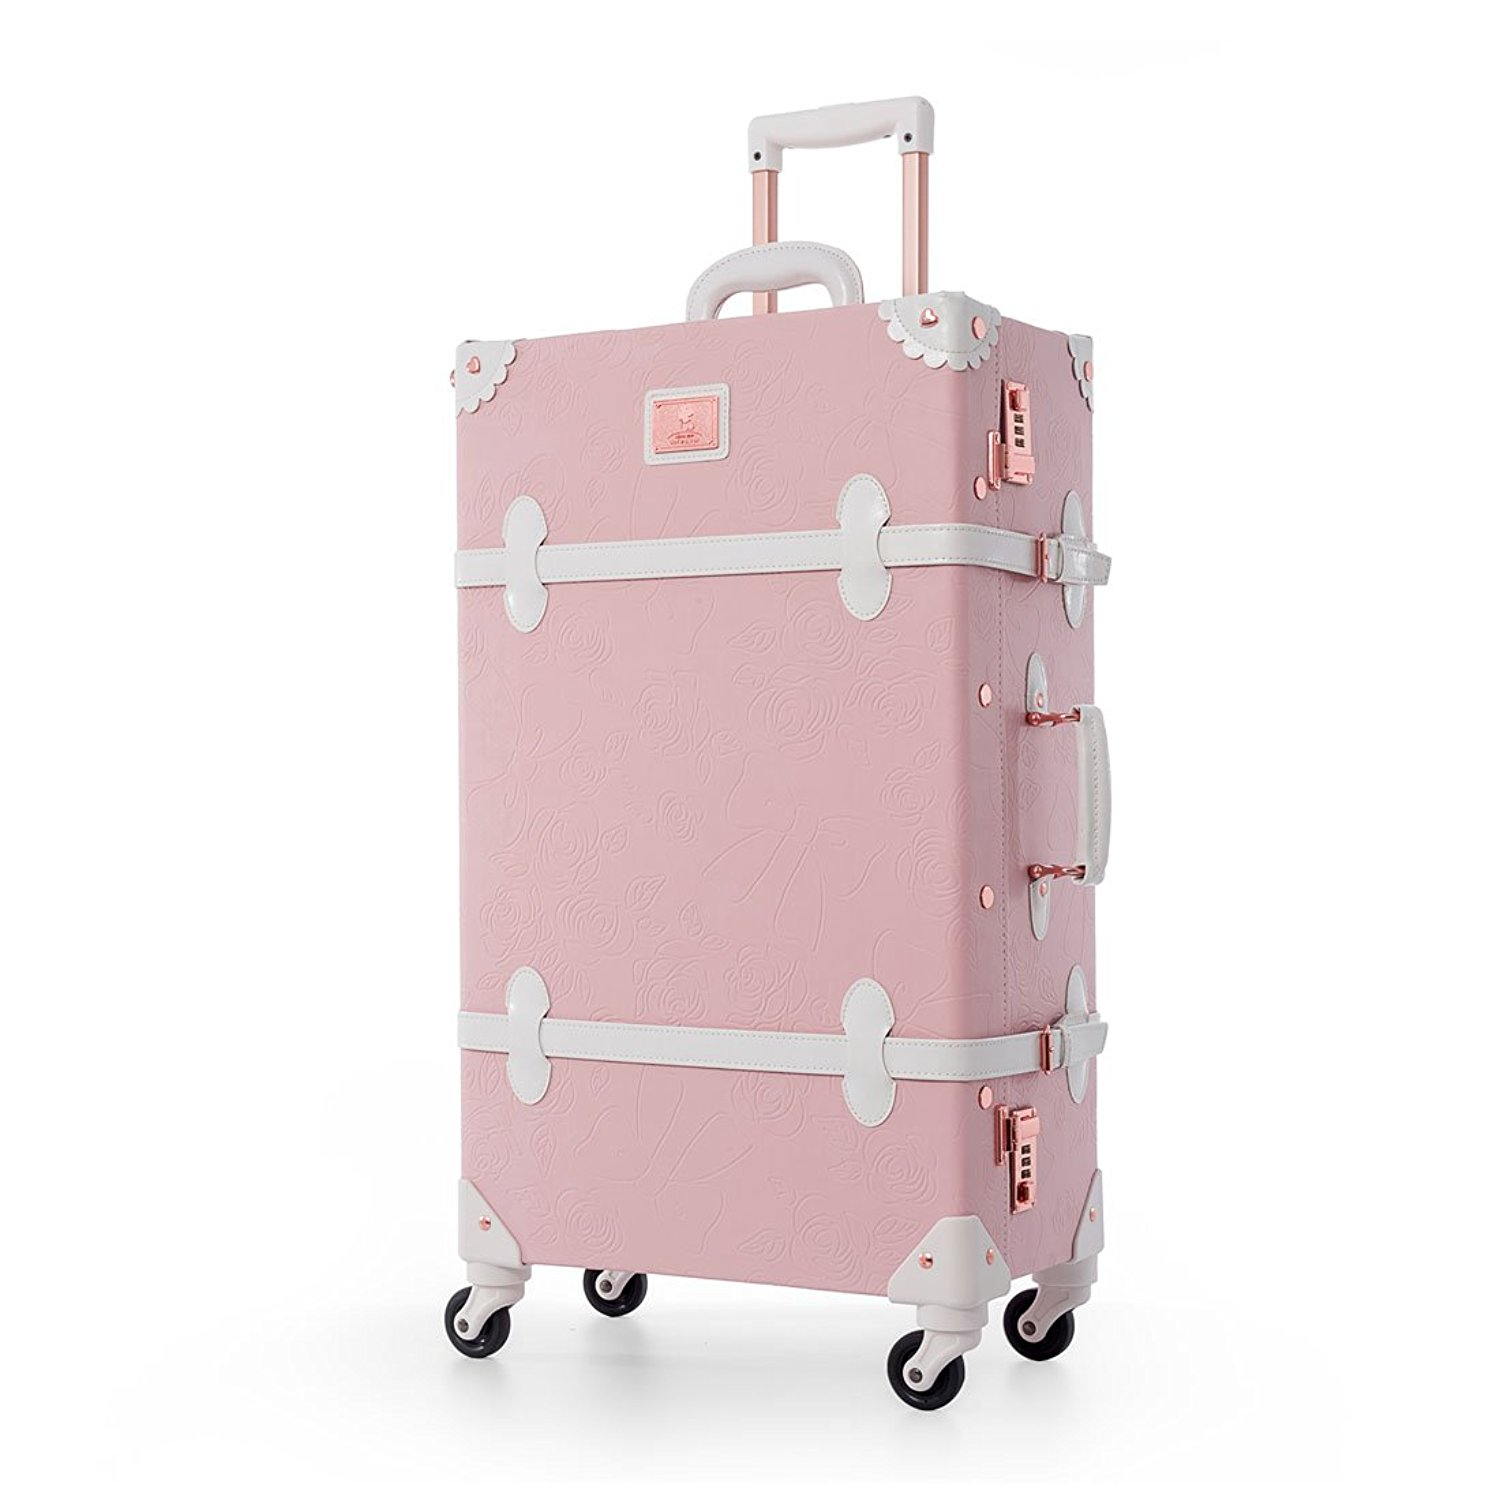 cffbe10a8 Get Quotations · UNIWALKER Women Embossed Floral Rolling Luggage Pu Leather  Suitcase for Girls